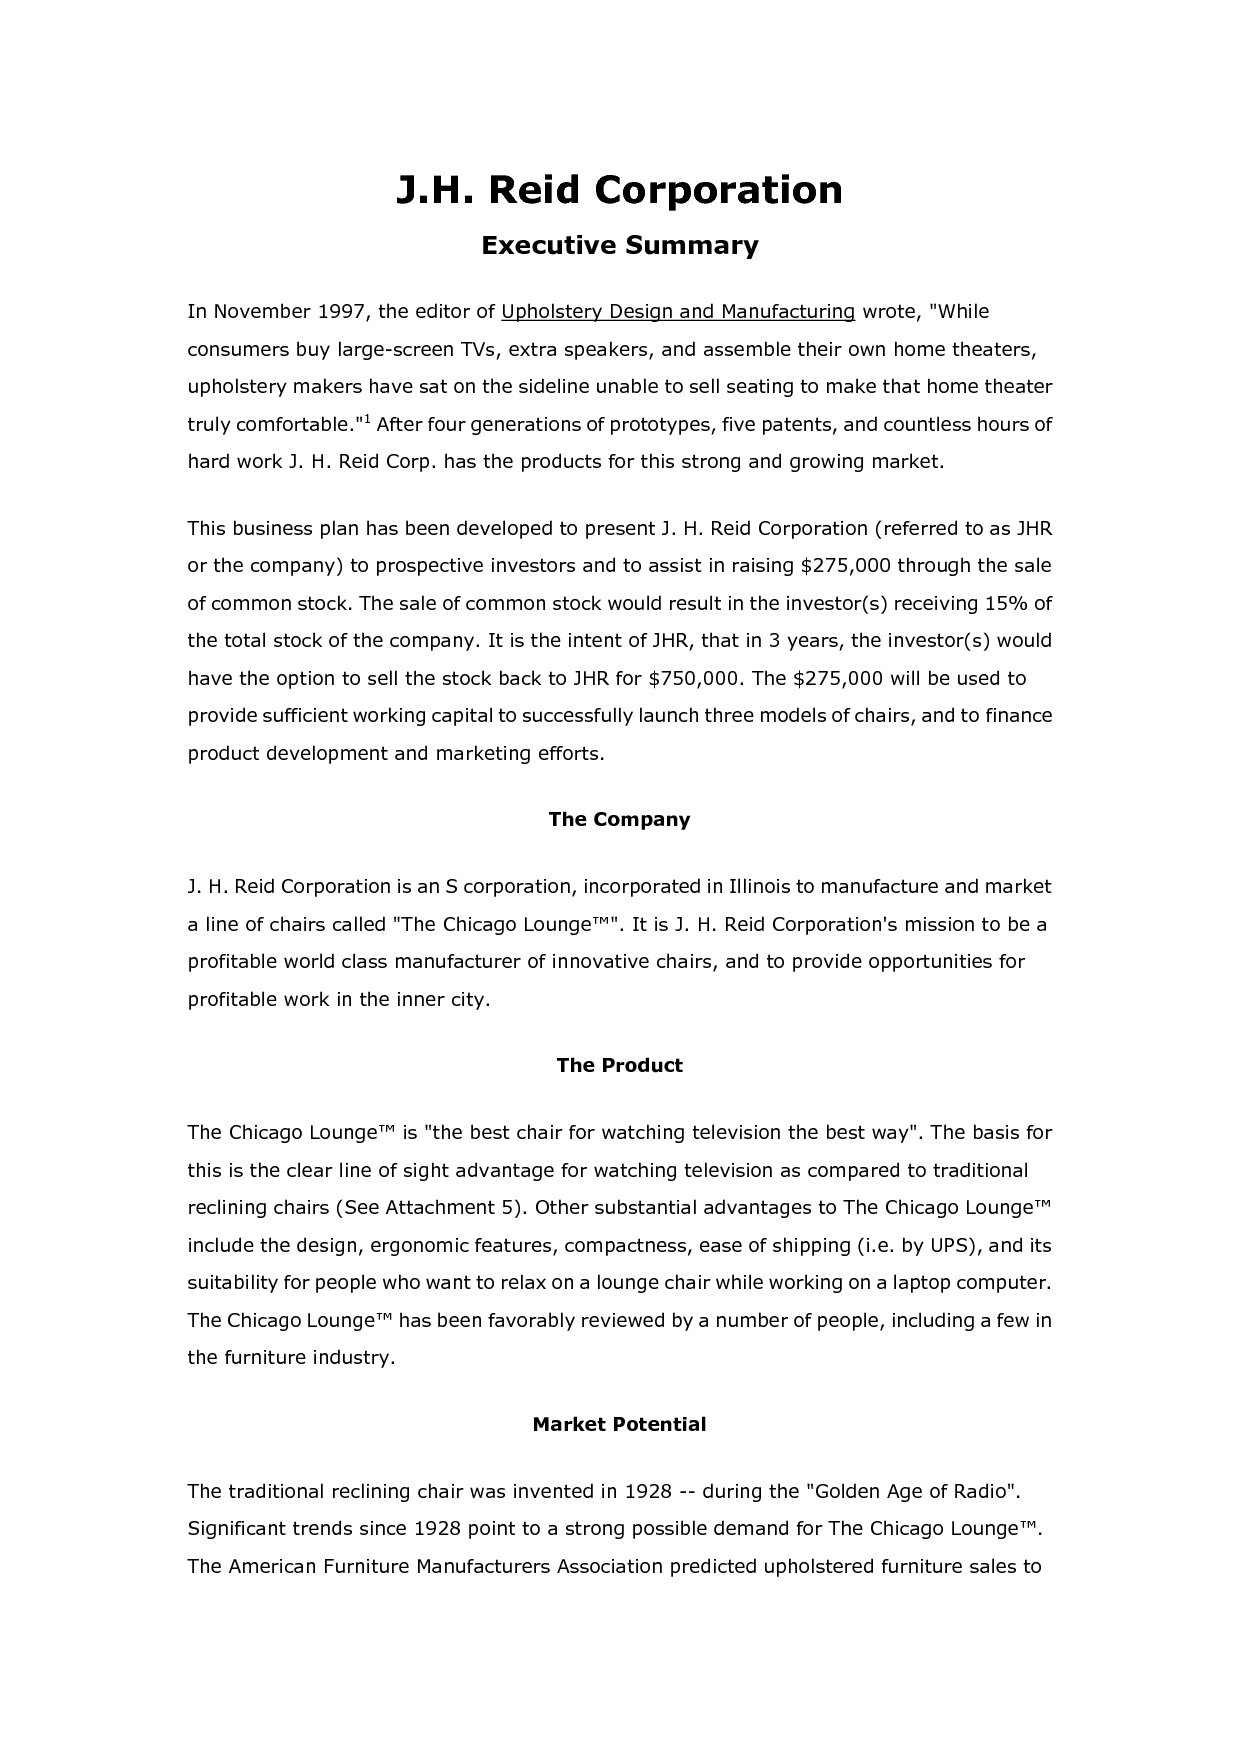 modest proposal essay ideas proposal essays how effective is proposal essays